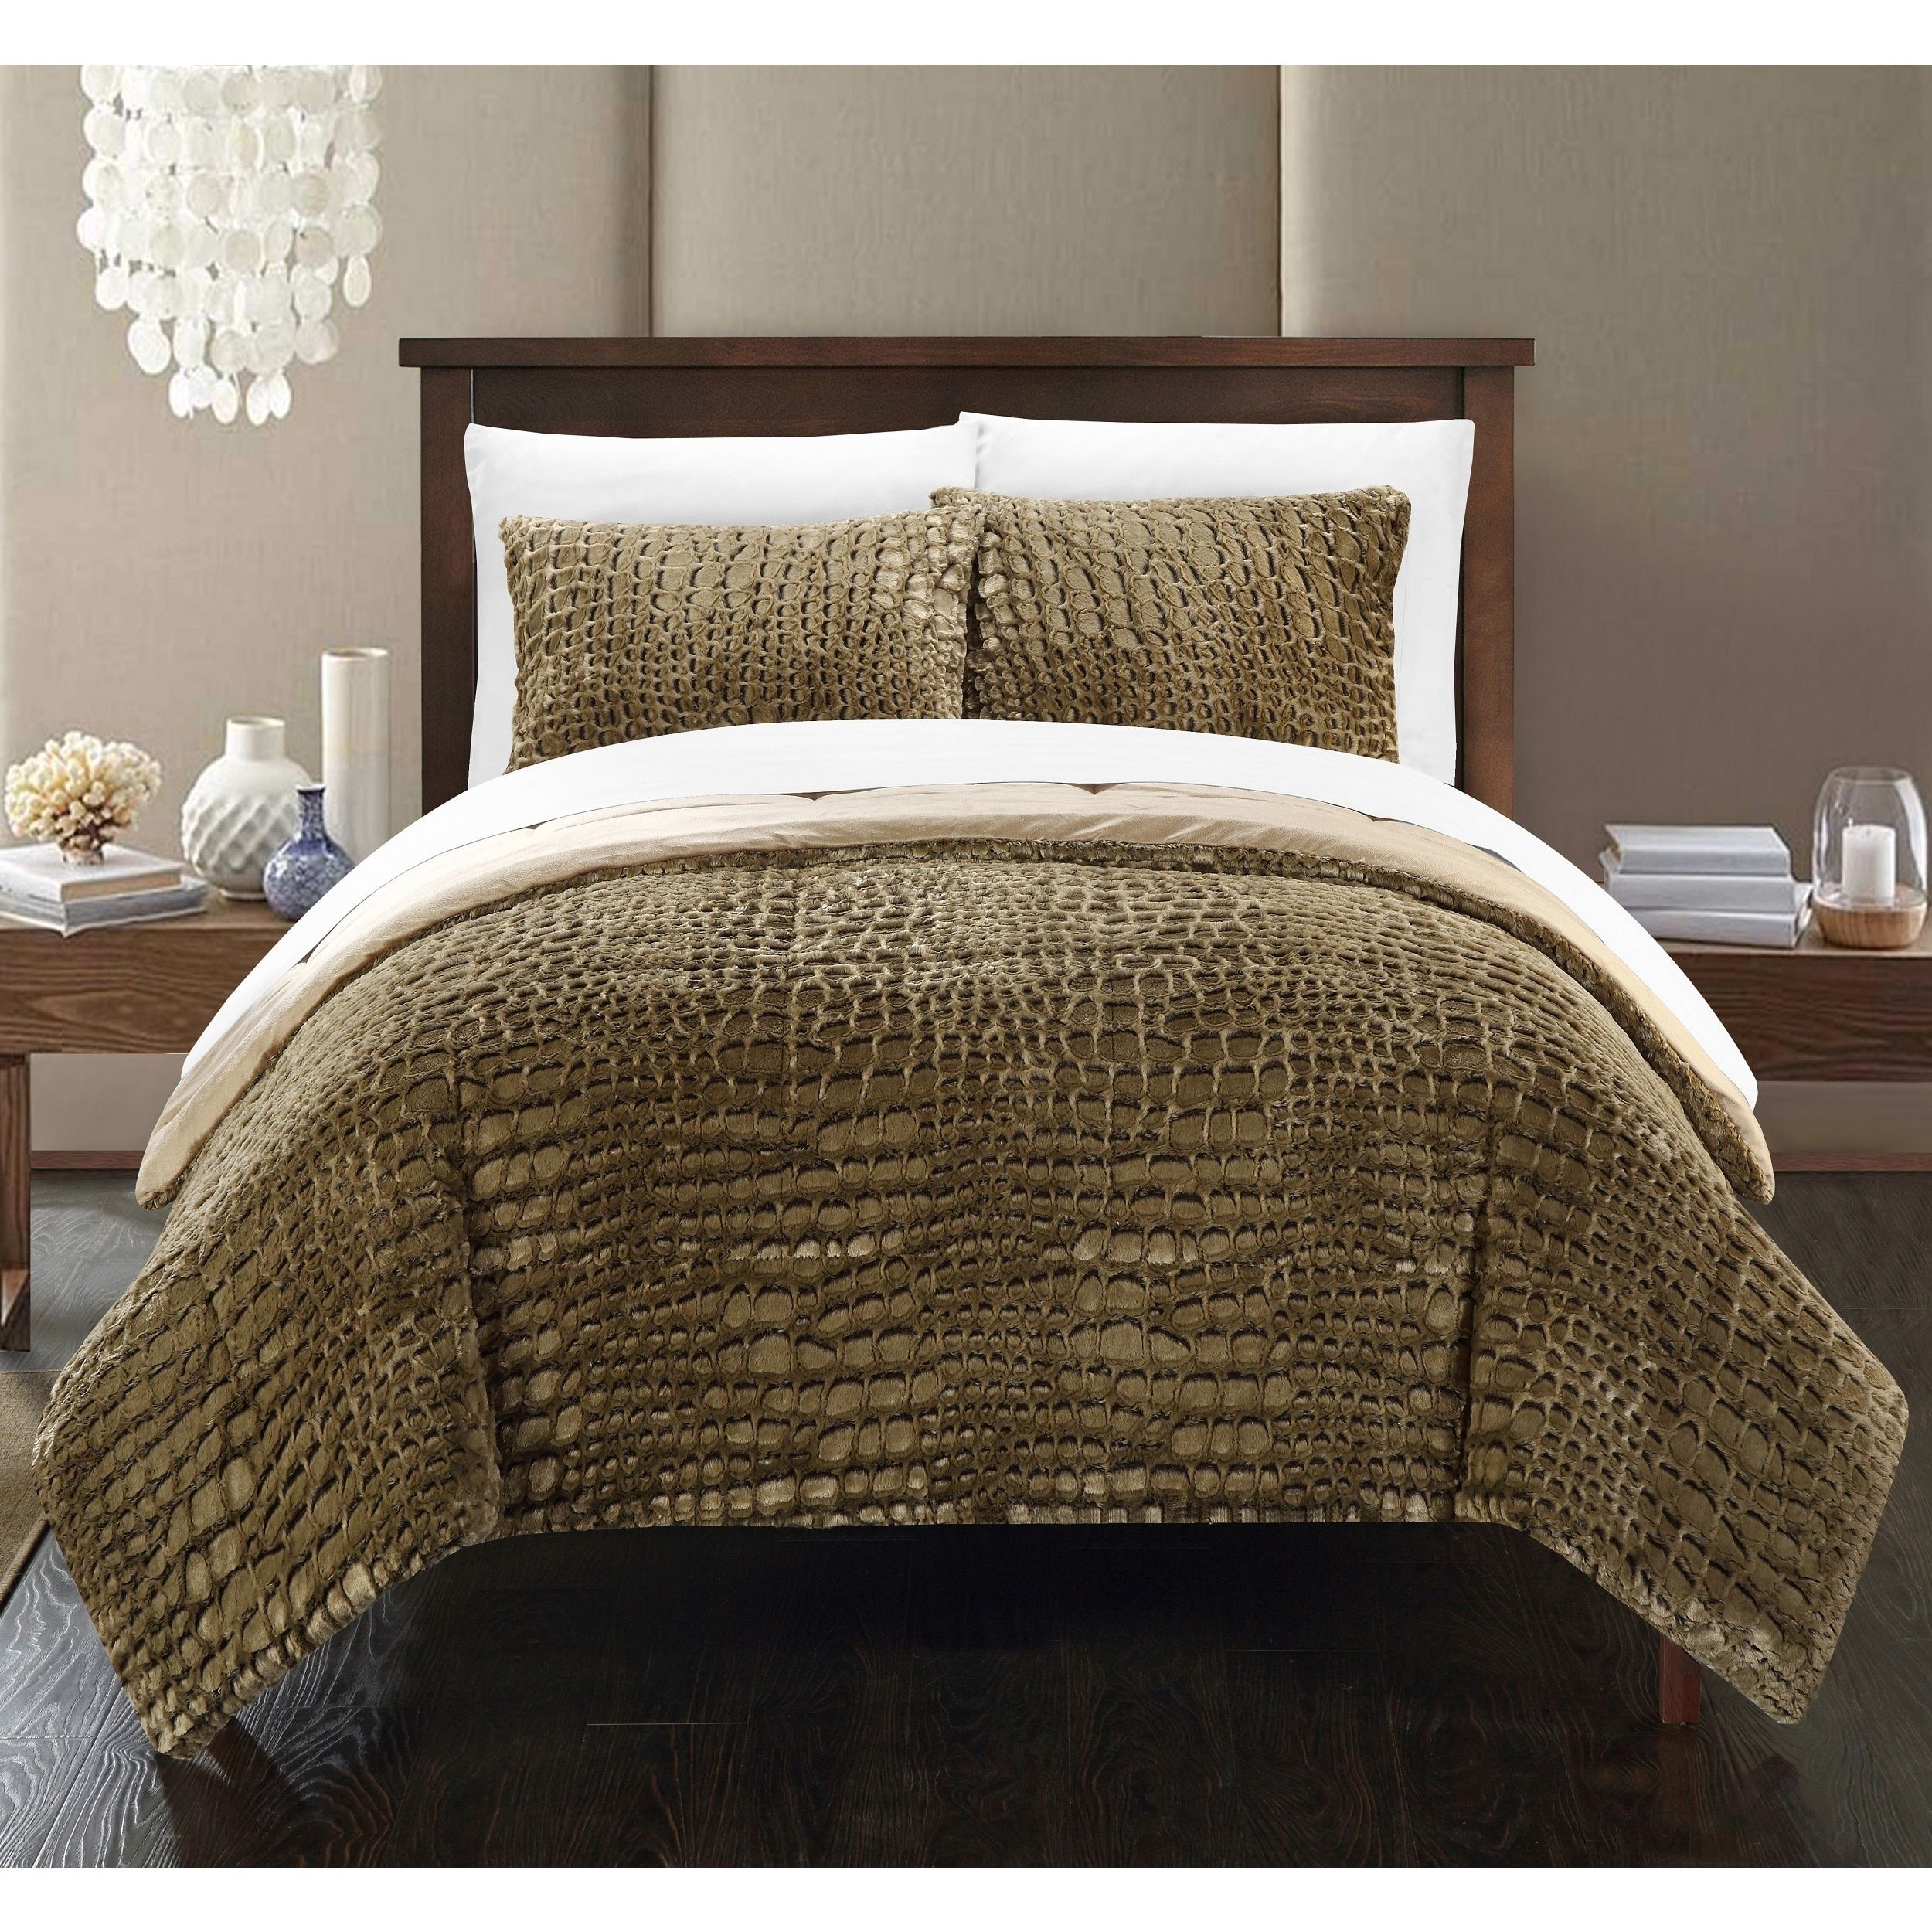 Bed in a Bag Free Shipping on orders over $45 at Overstock